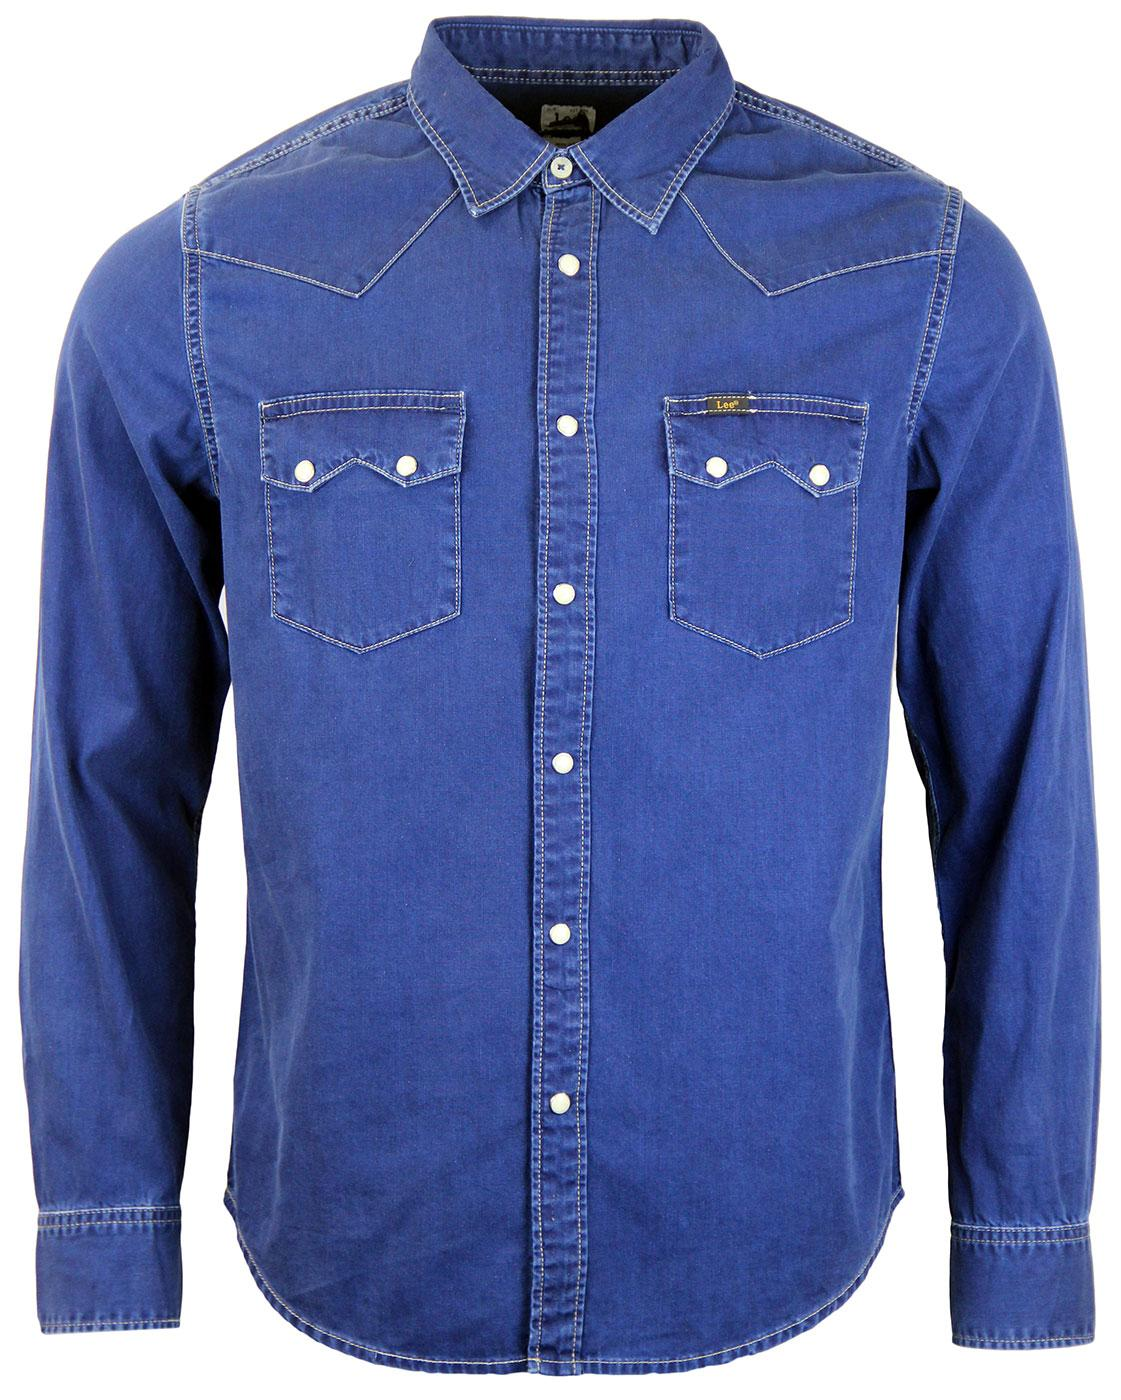 LEE Rider Retro Sawtooth Pocket Coated Rider Shirt